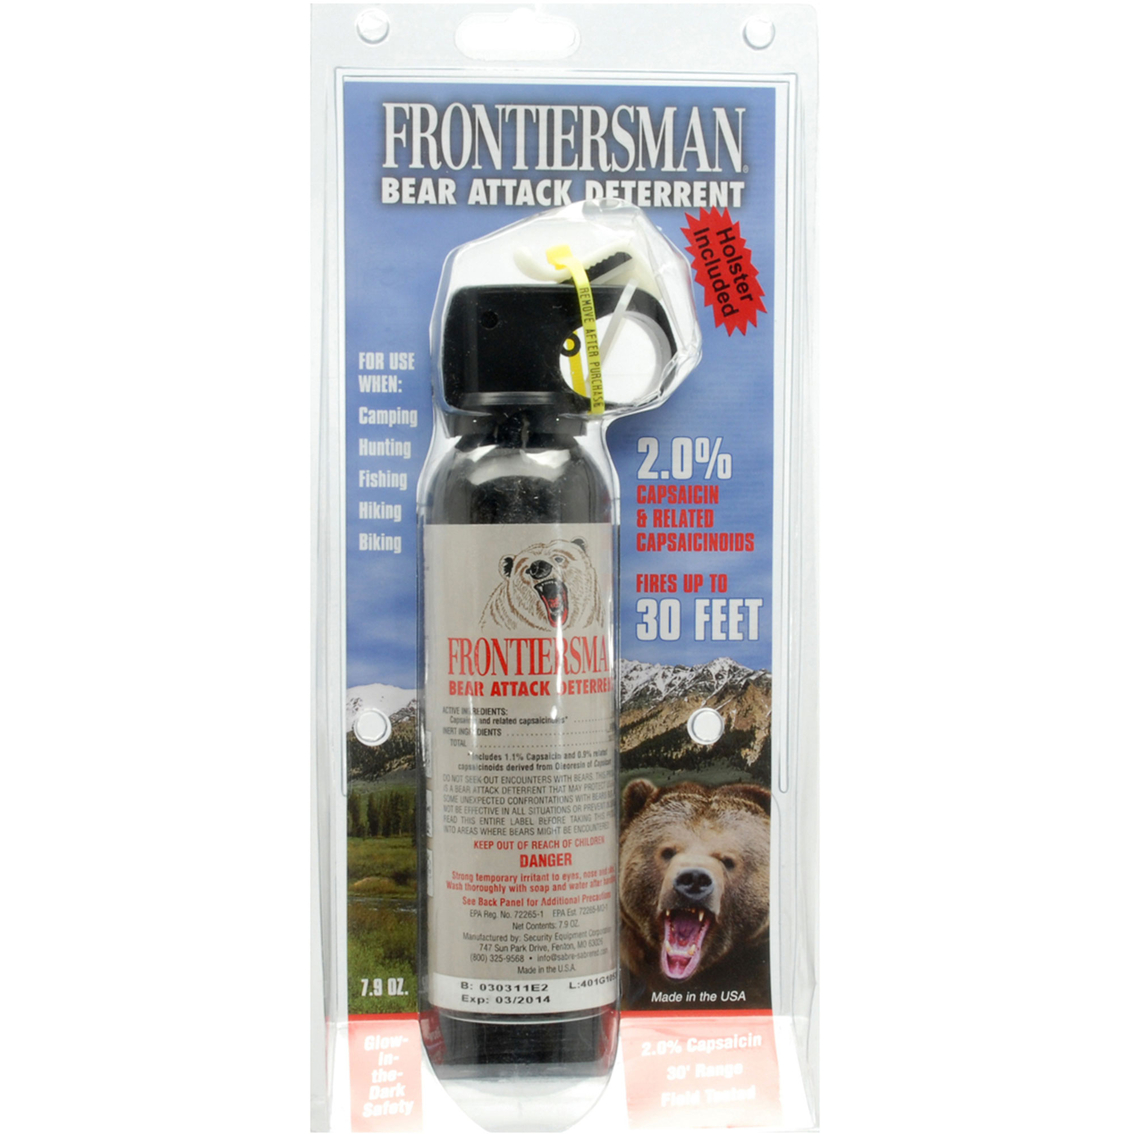 Bear Protection With Frontiersman Bear Spray: Sabre Frontiersman Bear Spray And Attack Deterrent 7.9 Oz